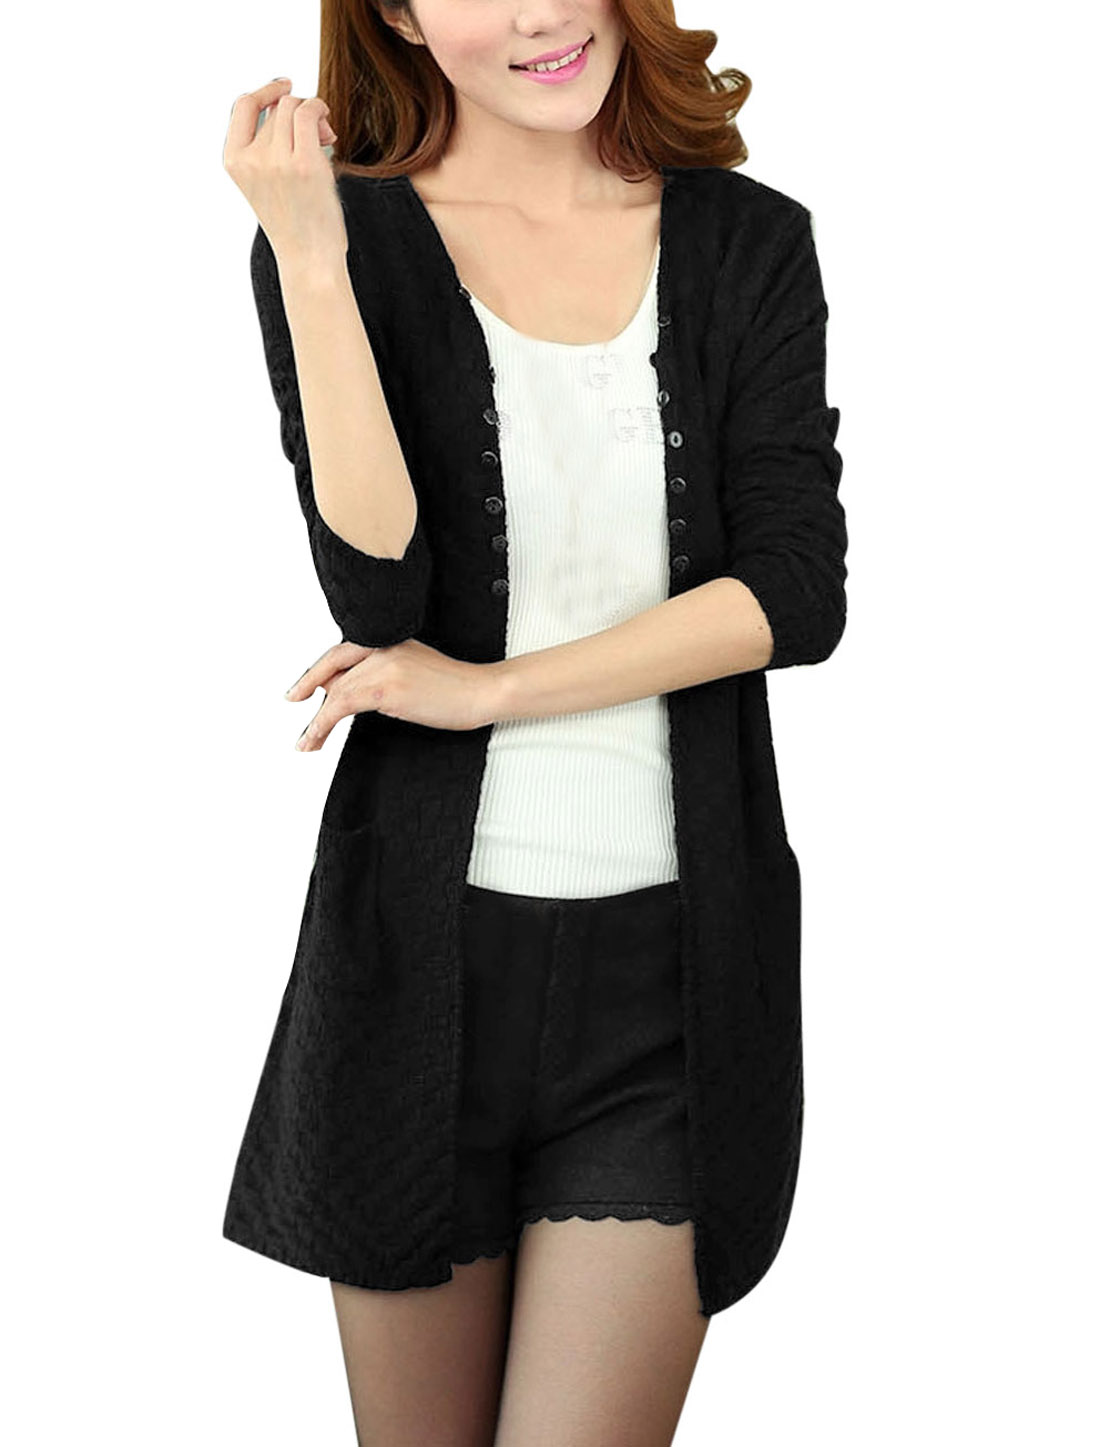 Lady Front Opening Buttons Decor Long Sleeve Knitting Cardigan Black S